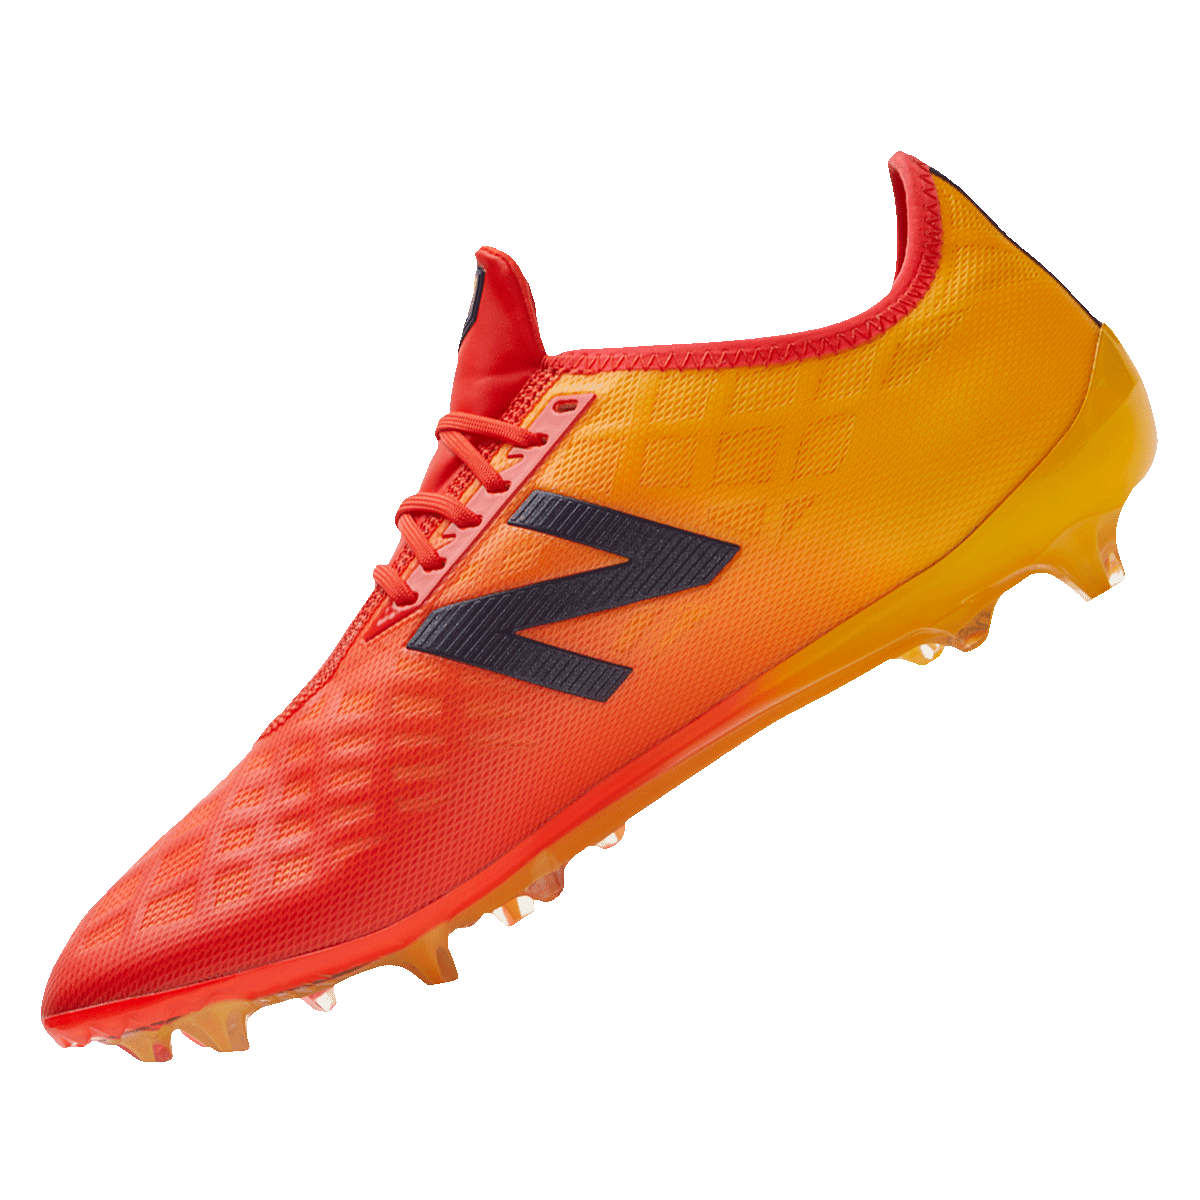 b7a59be0ccc0d1 New Balance voetbalschoenen Furon 4.0 Pro FG rood/oranje - Voetbal shop